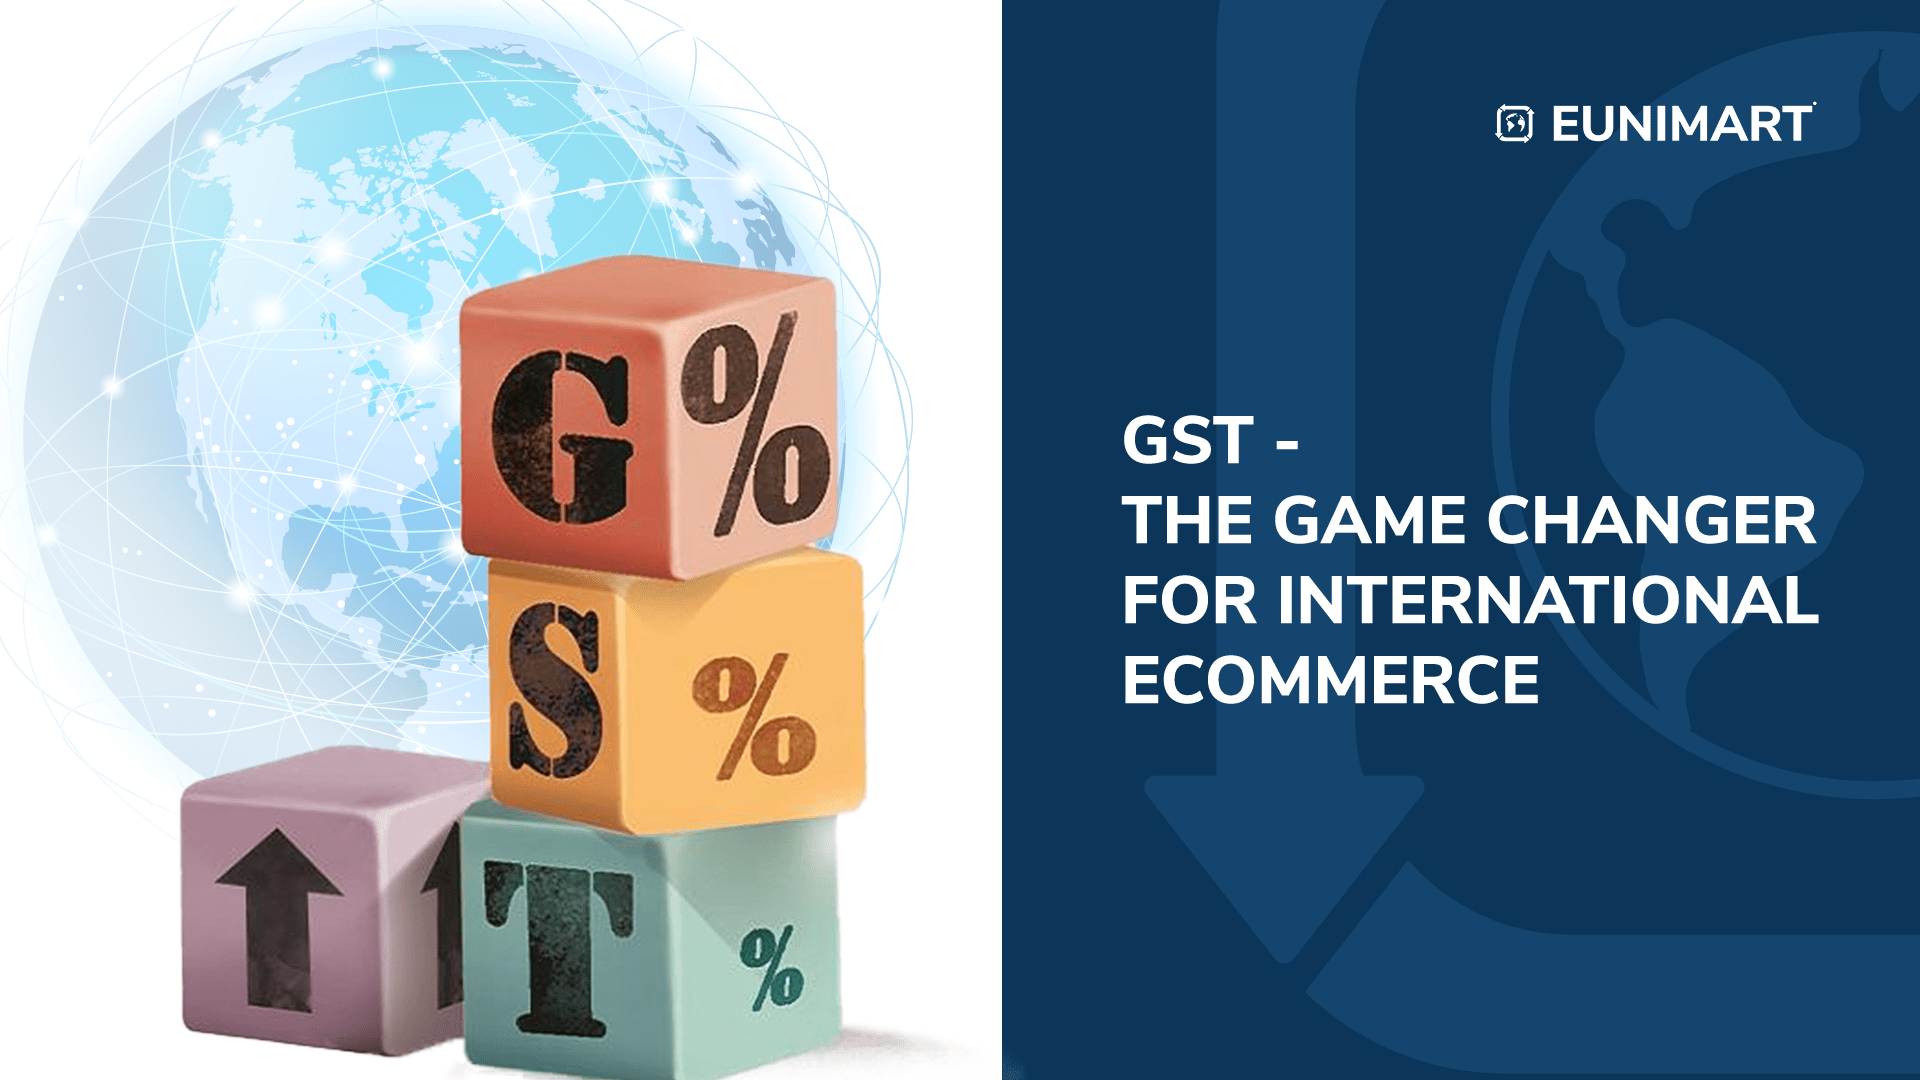 GST- The Game Changer for International Ecommerce